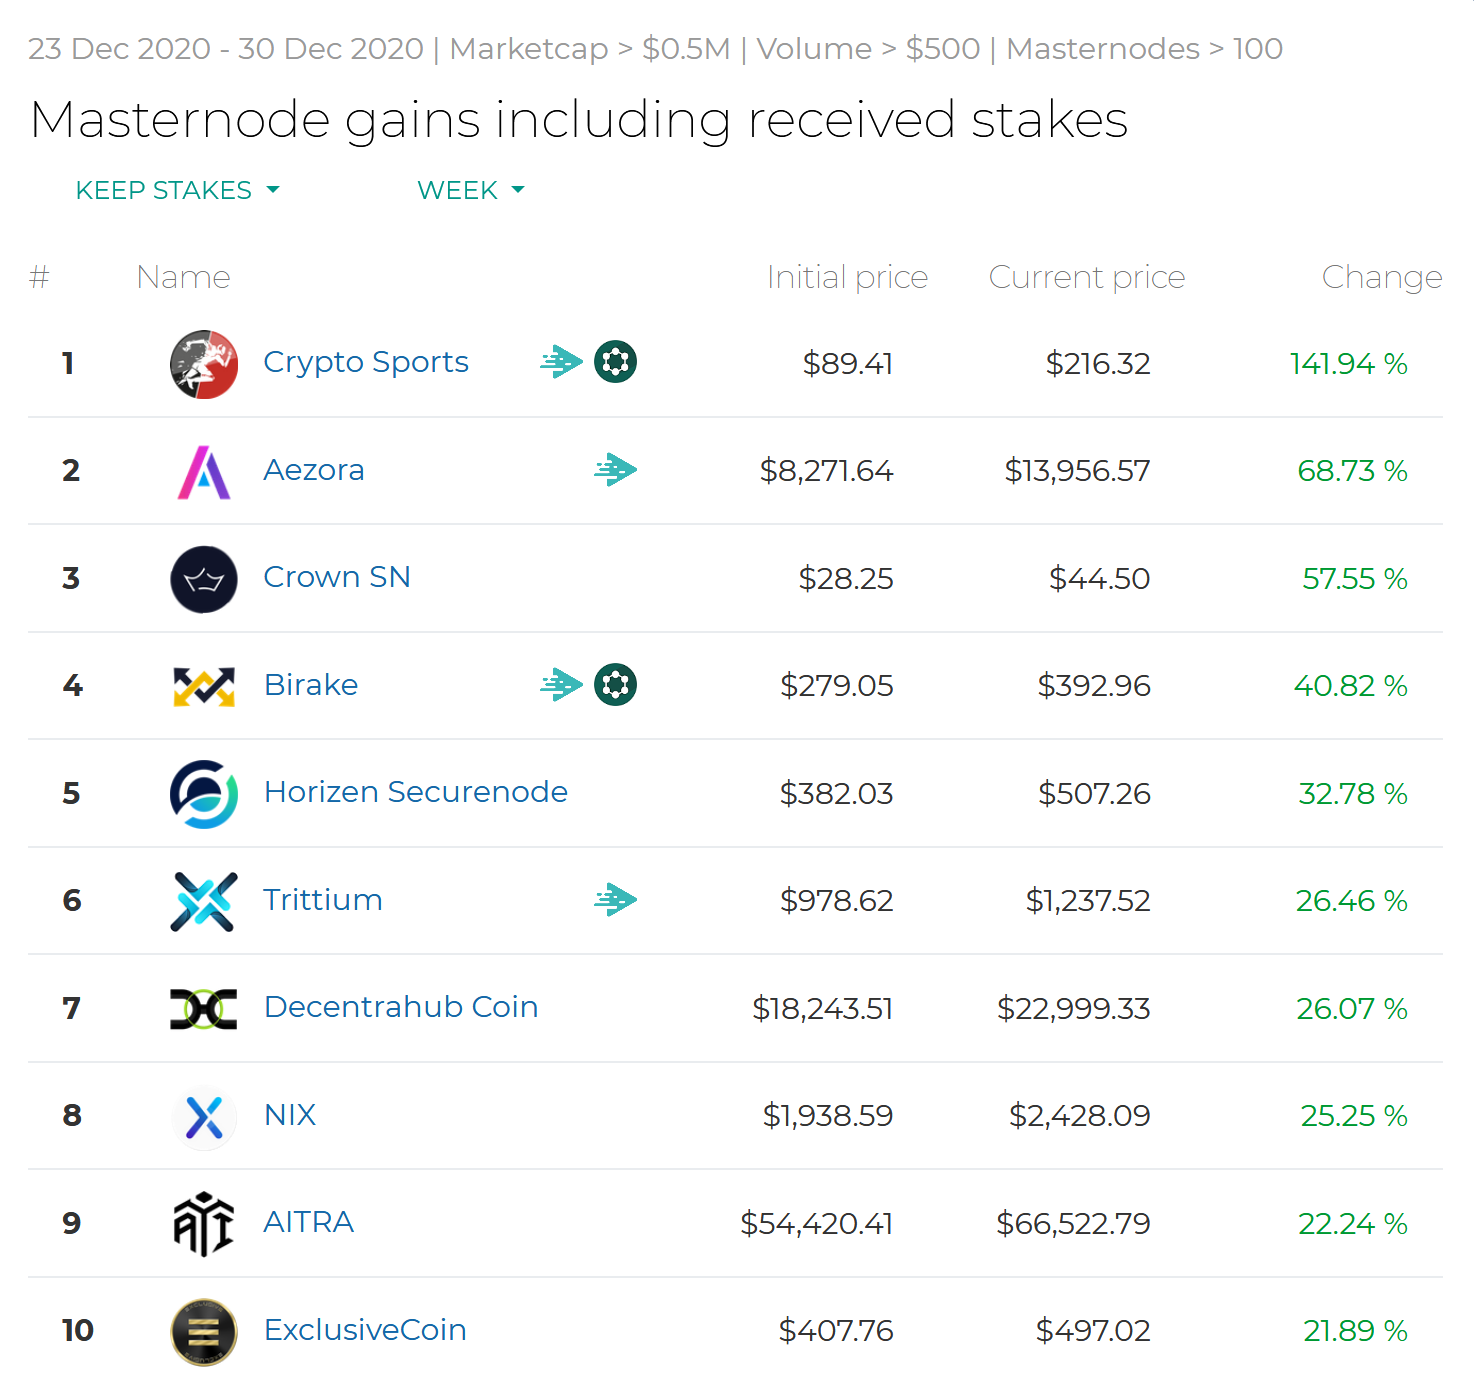 Screenshot_2020-12-30-Masternode-gains-including-received-stakes